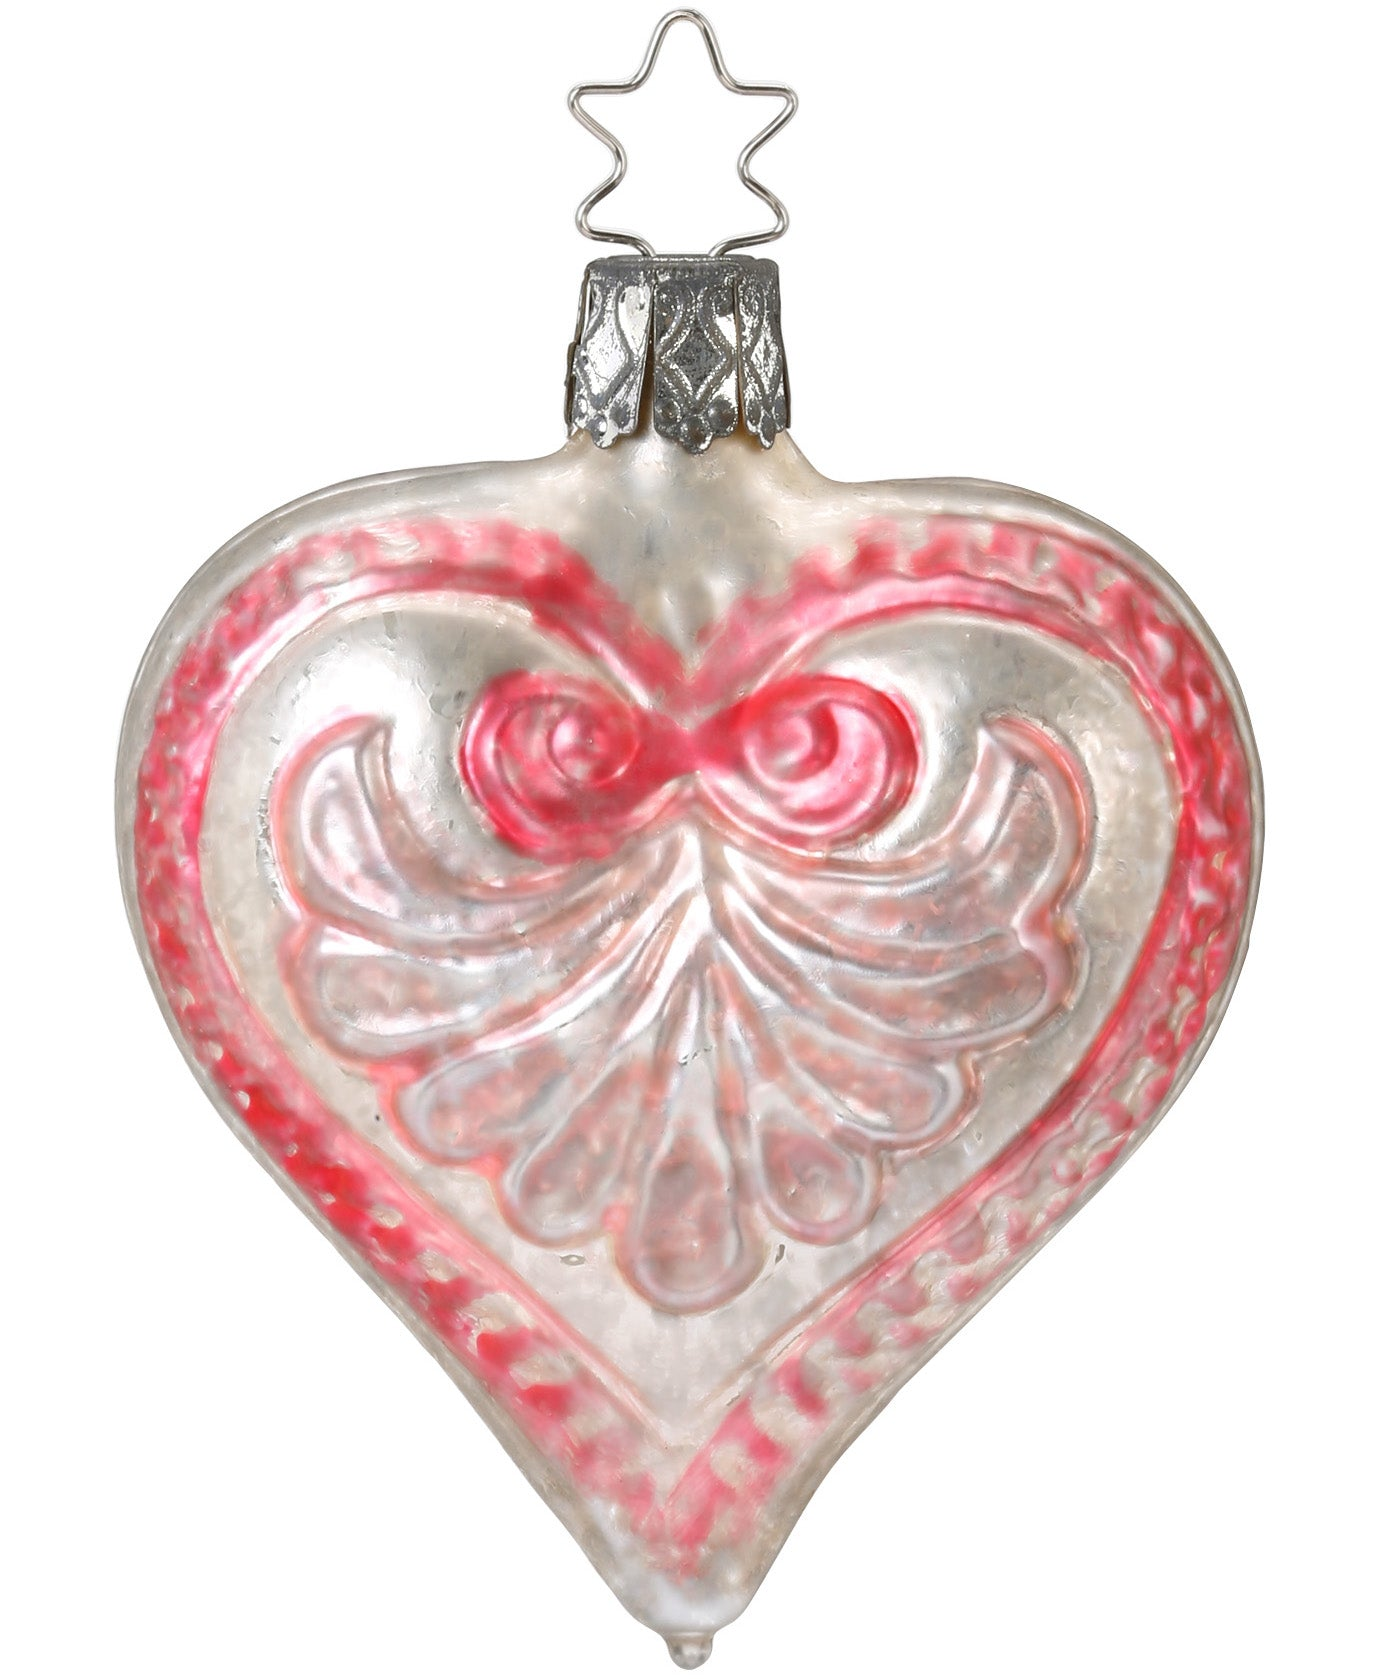 Pink on White Scrolled Heart Ornament with Vintage Patina